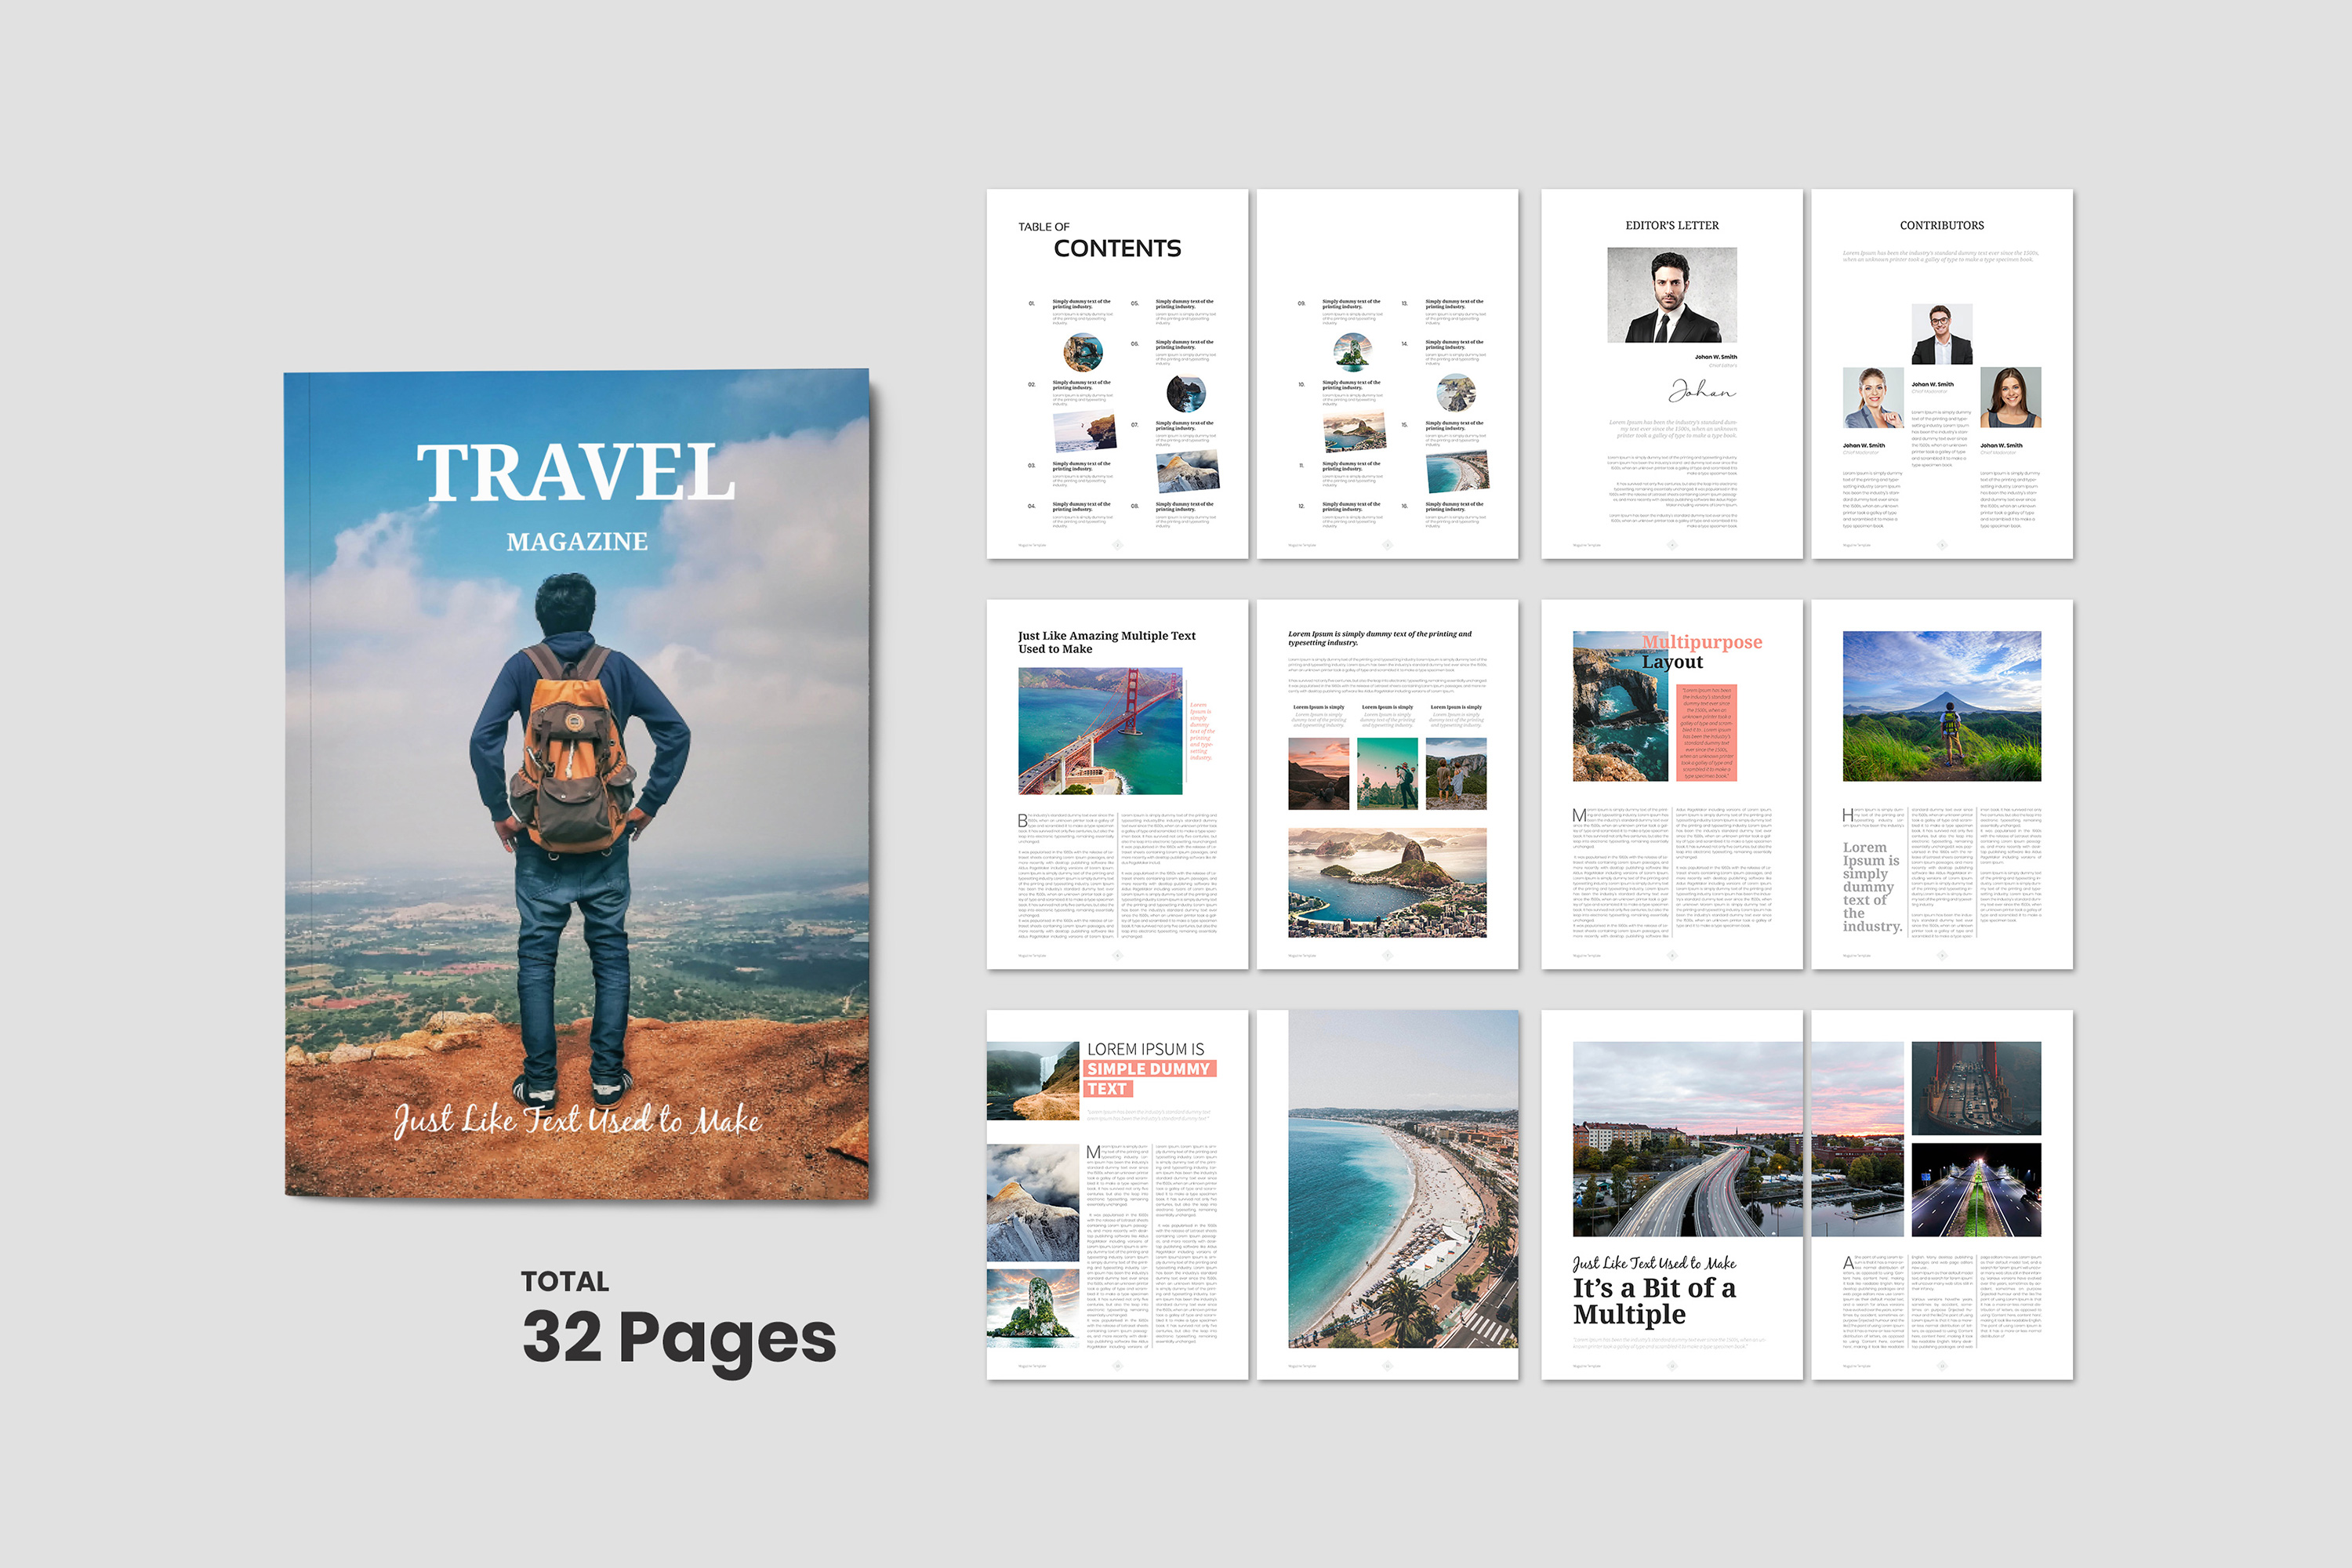 Travel Magazine Template example image 1